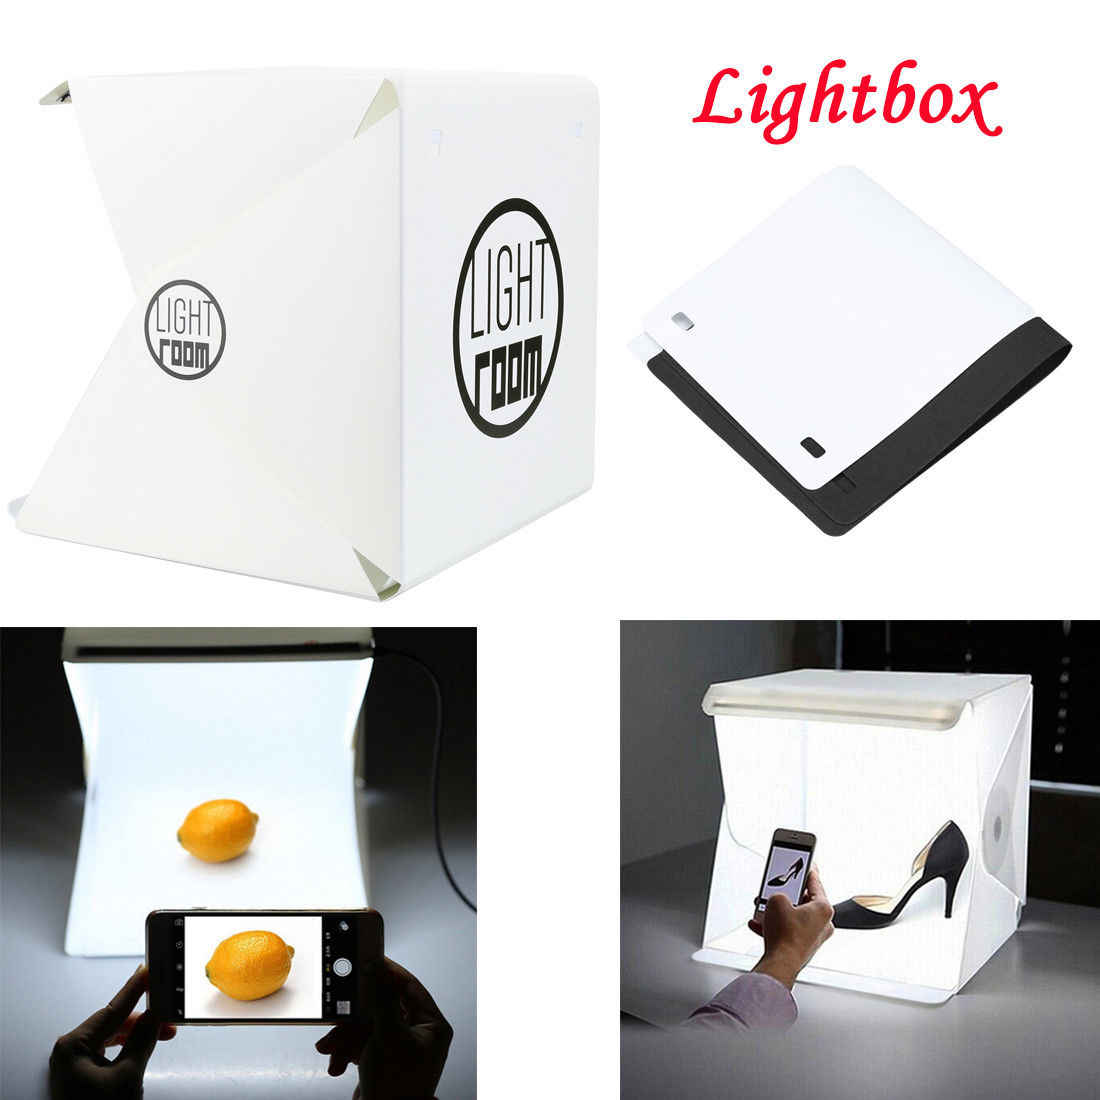 Mini Portable Folding Lightbox Photography LED Light Room Photo Studio Light Soft Box Background Kit for Digital DSLR Camera